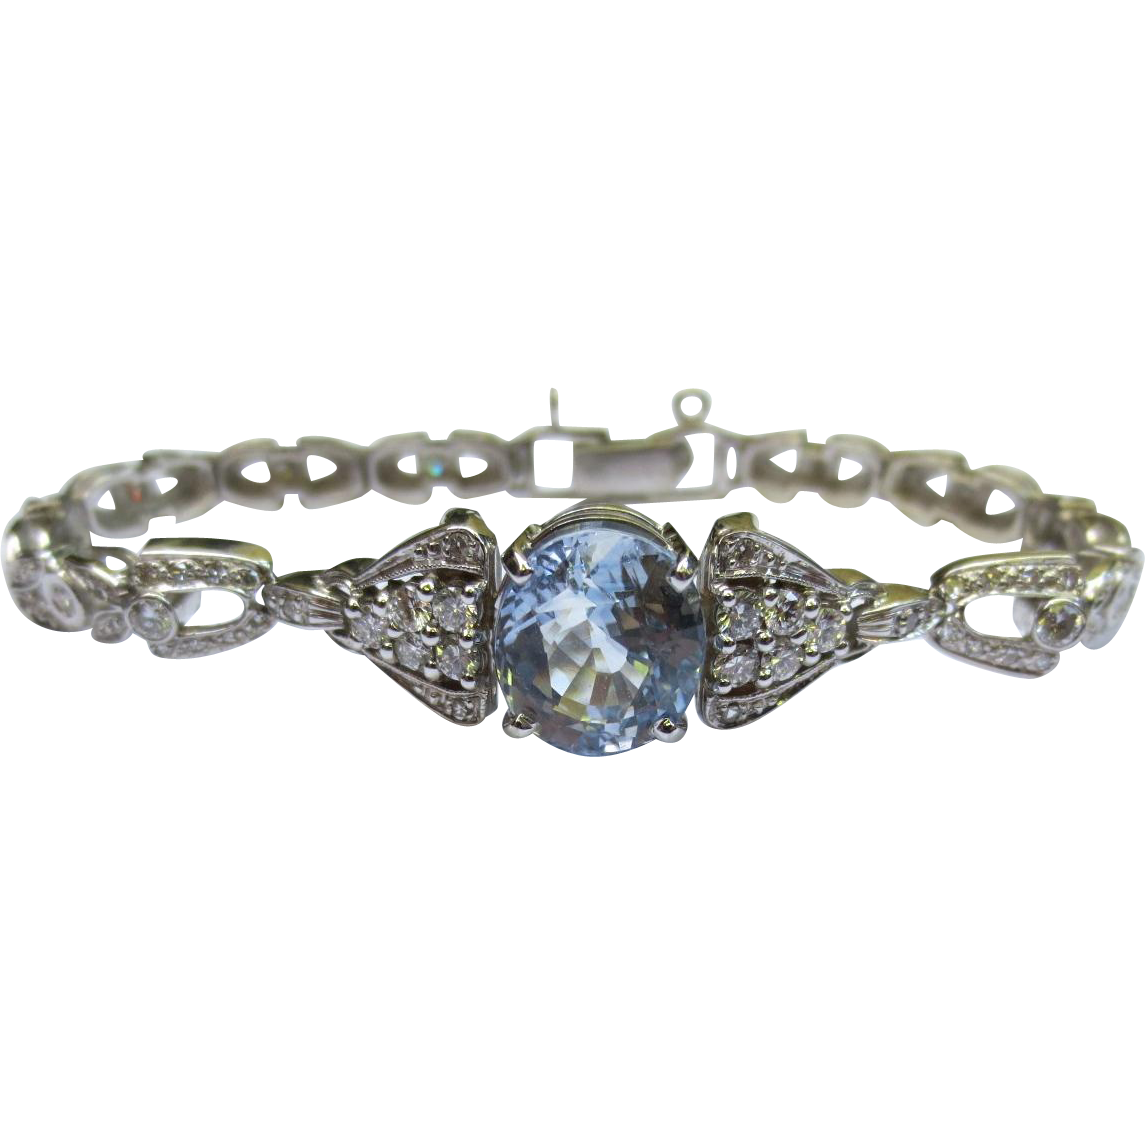 14k Gold Vintage Diamond and Sapphire Bracelet